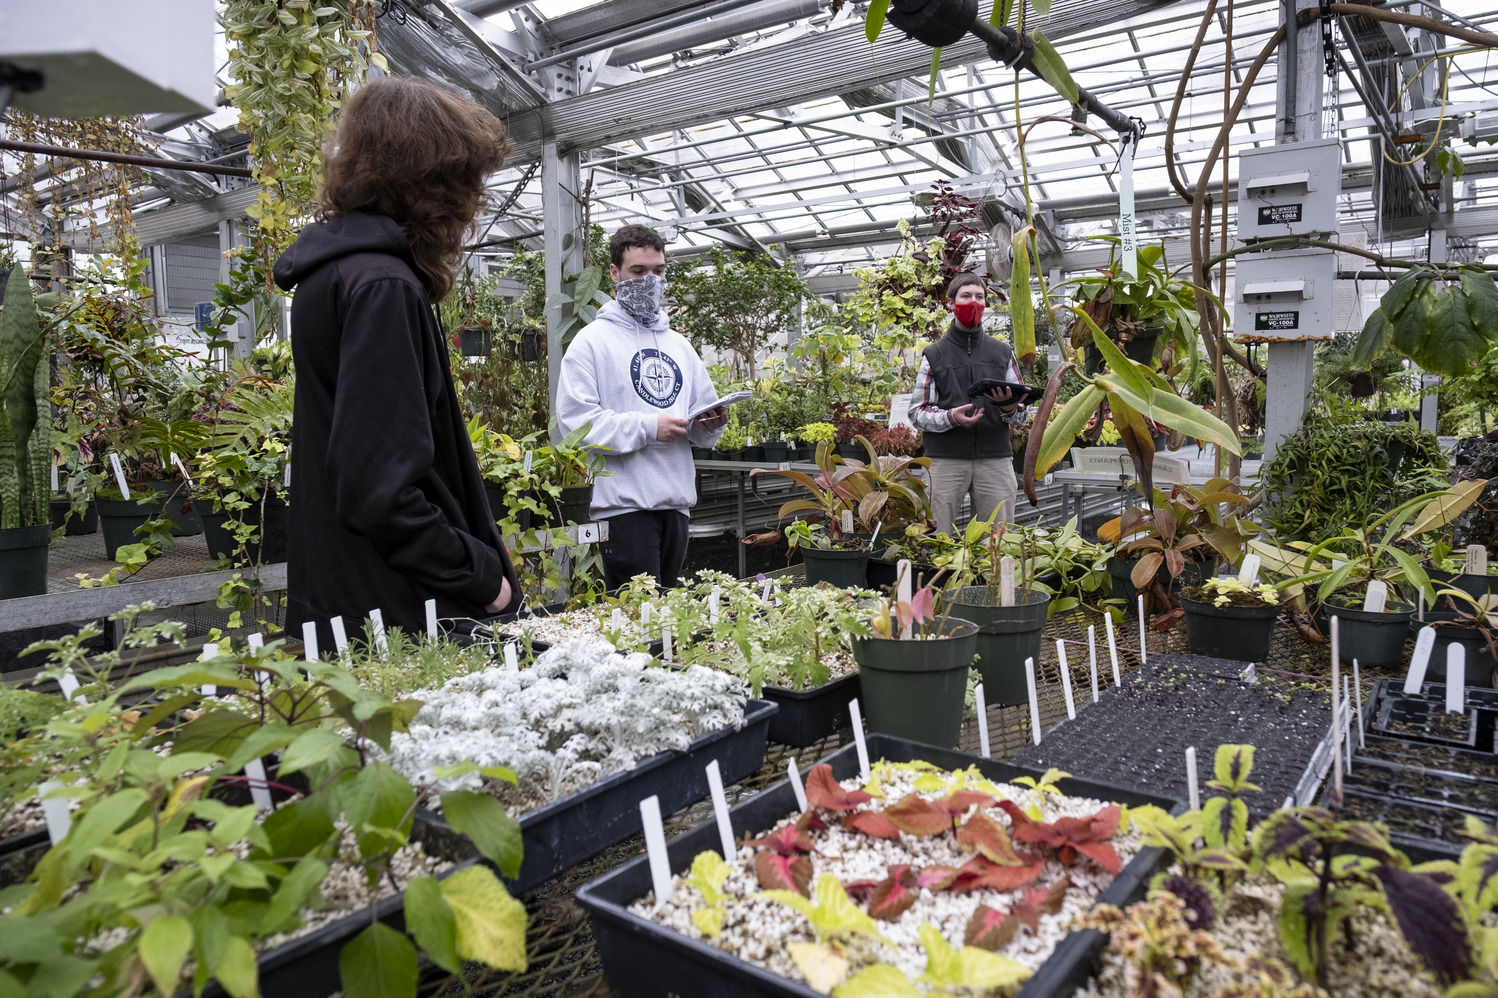 Tyler School of Art and Architecture students in Horticulture Program in Ambler Greenhouse